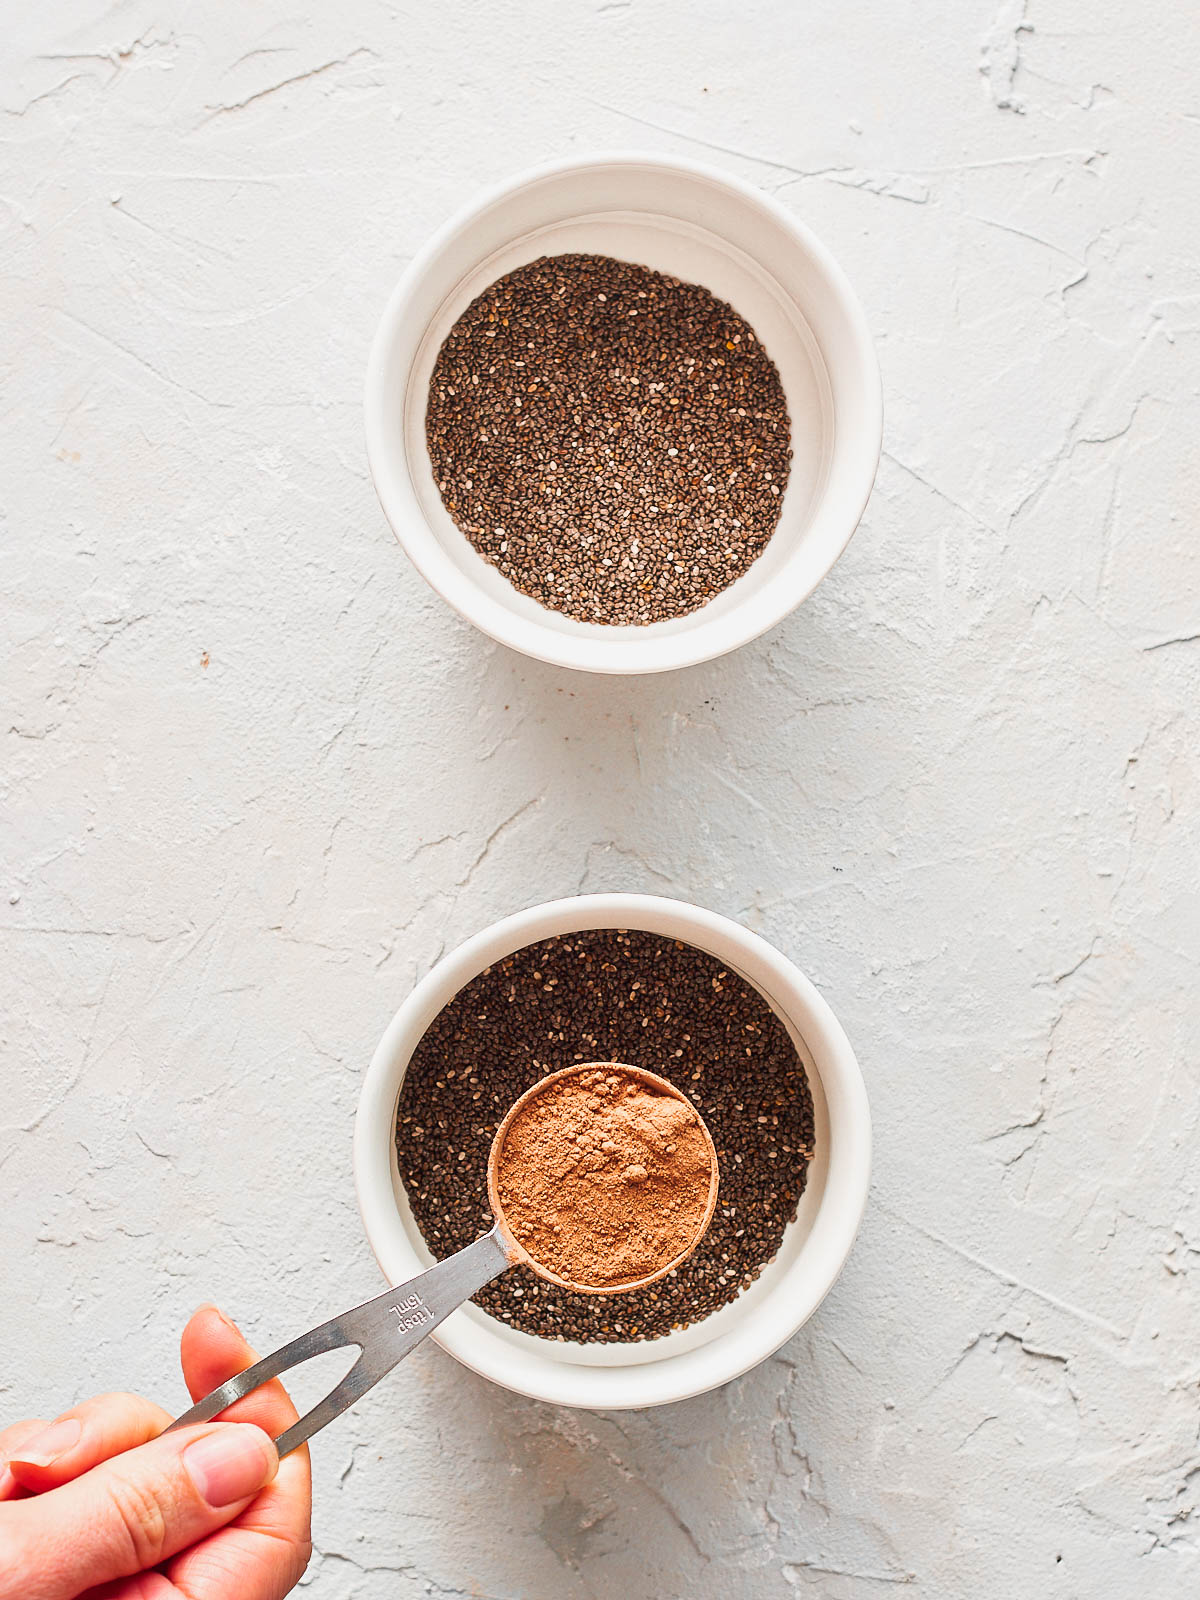 Adding cacao powder to one bowl of chia seeds